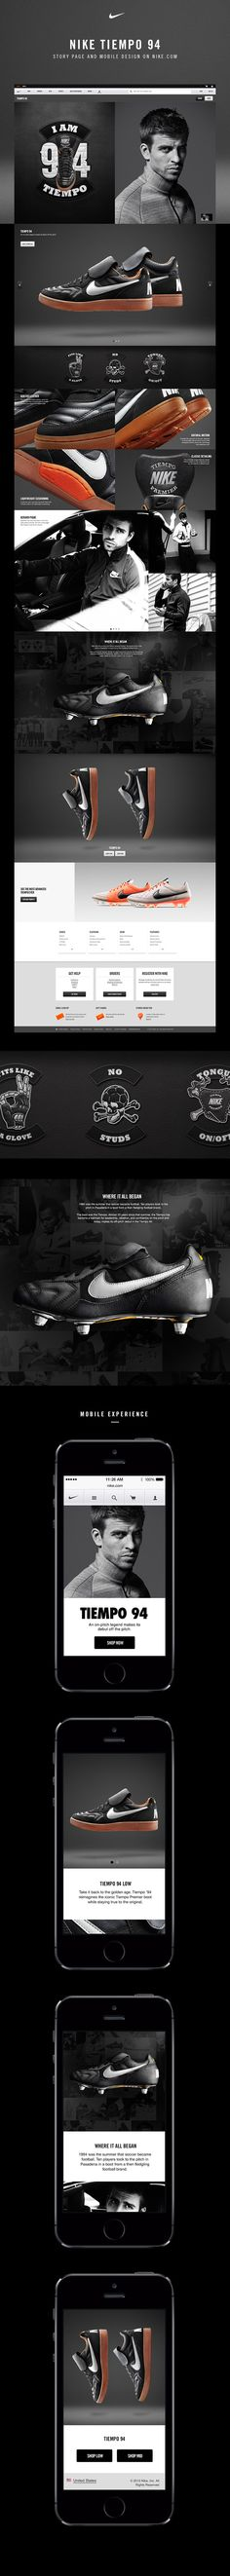 Nike Tiempo 94 by Ryan Mendes https://www.behance.net/gallery/20516963/Nike-Tiempo-94?utm_medium=email&utm_source=transactional&utm_campaign=project-published